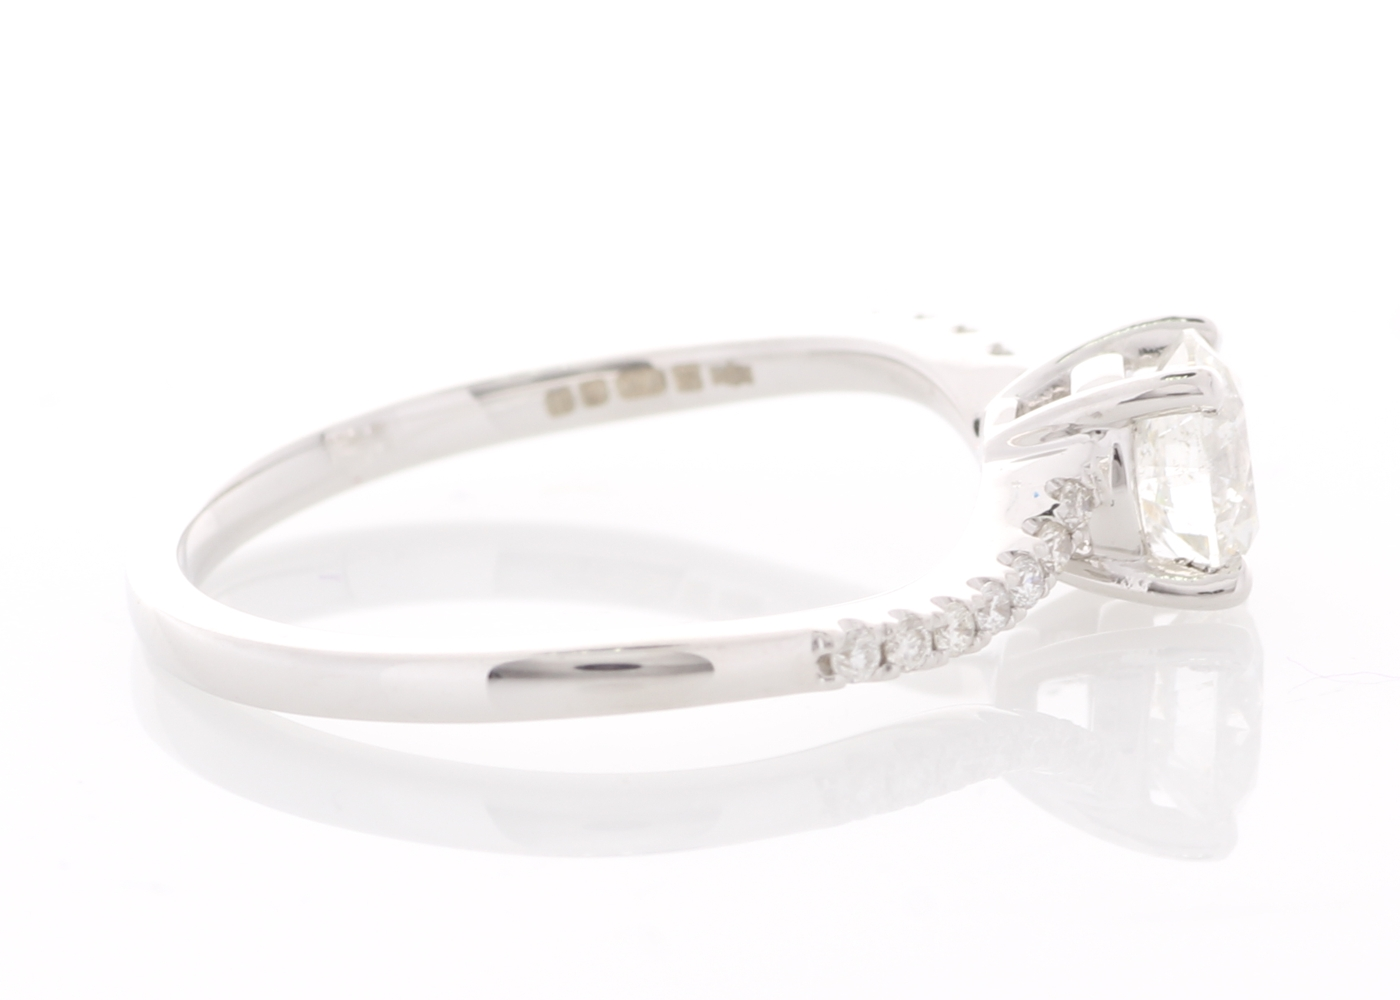 18ct White Gold Prong Set With Stone Set Shoulders Diamond Ring 0.73 Carats - Image 5 of 6